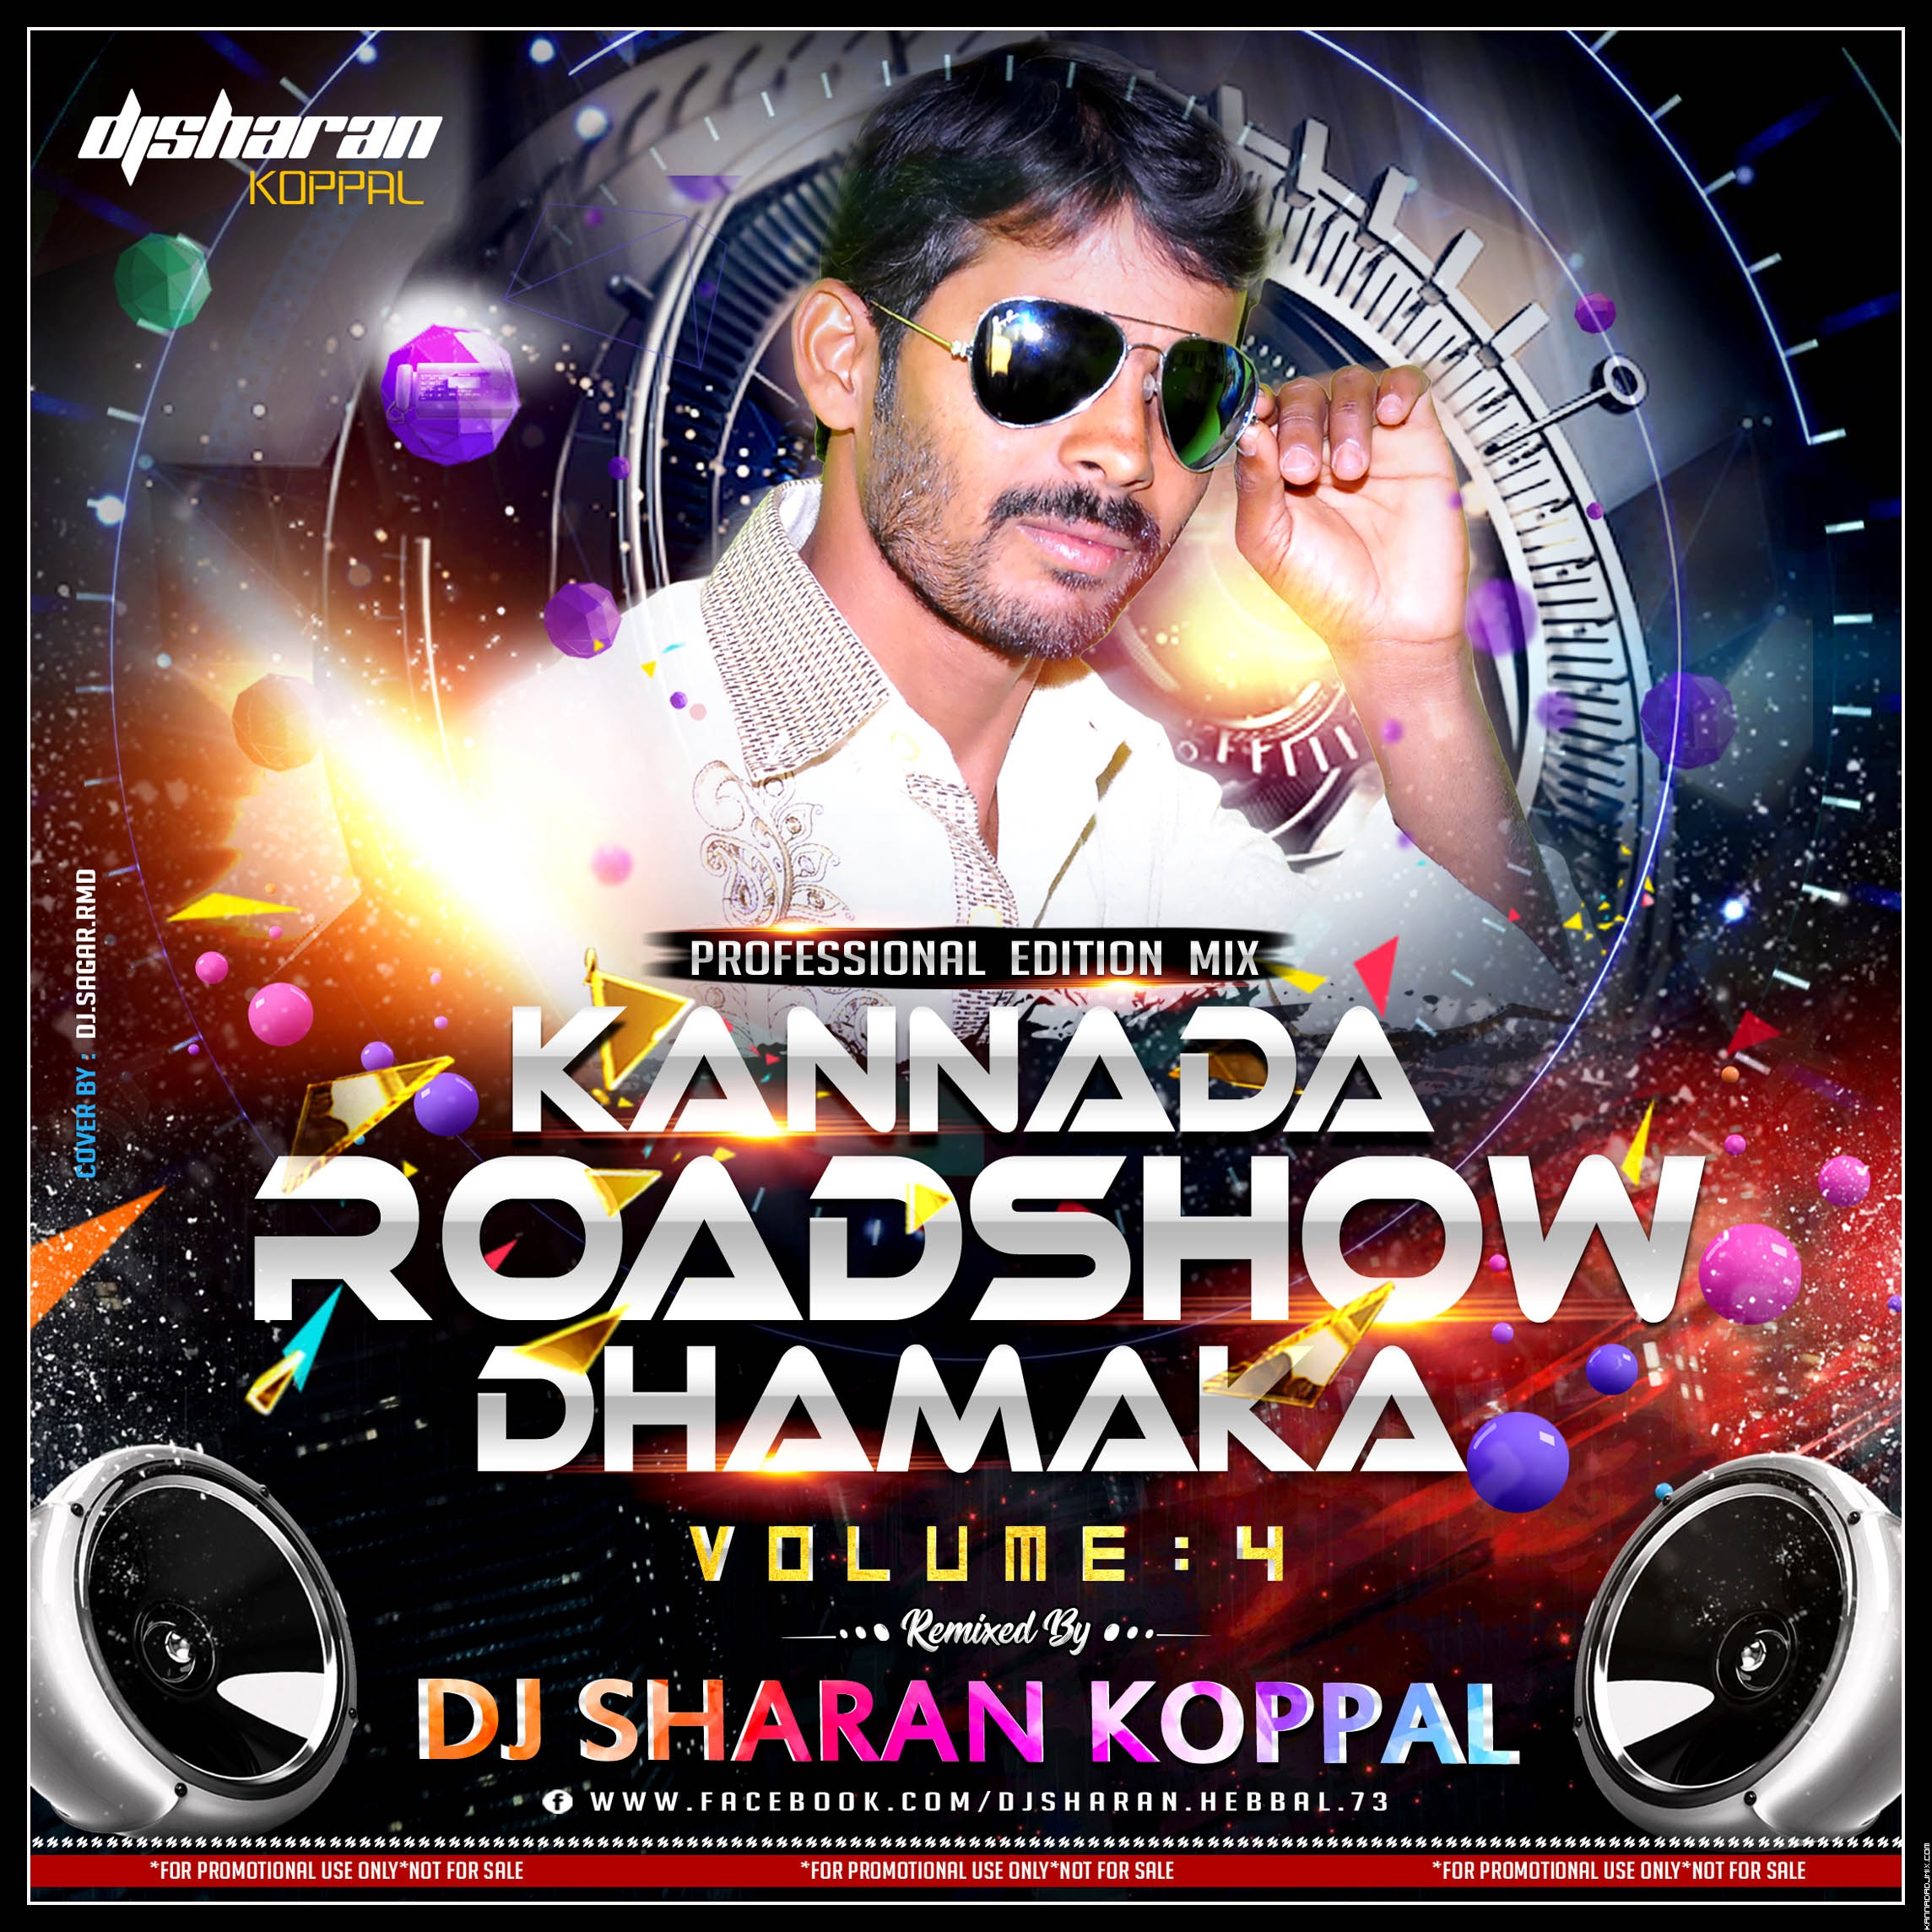 08.NEE CHANDANEE_(CHANDA)_DJ_SHARAN_KOPPAL_REMIX.mp3